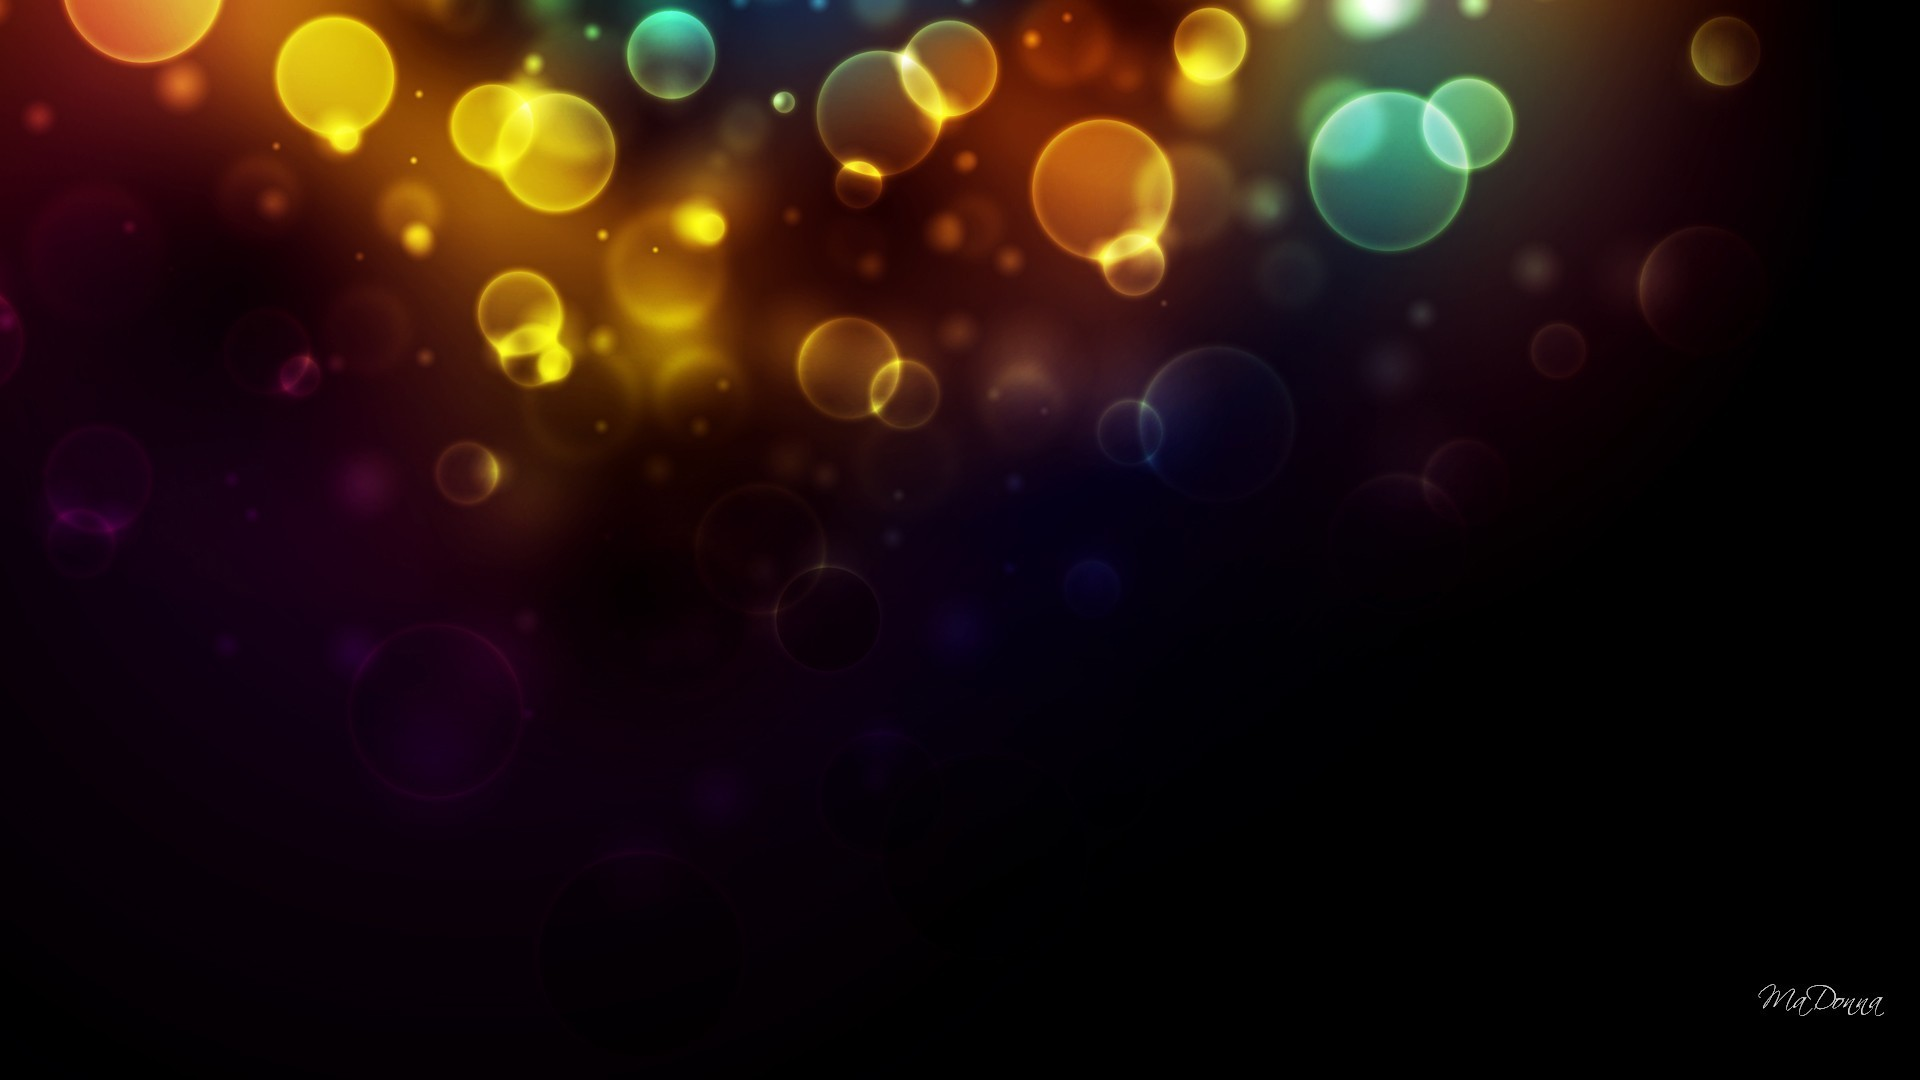 all hd wallpaper bokeh - photo #45